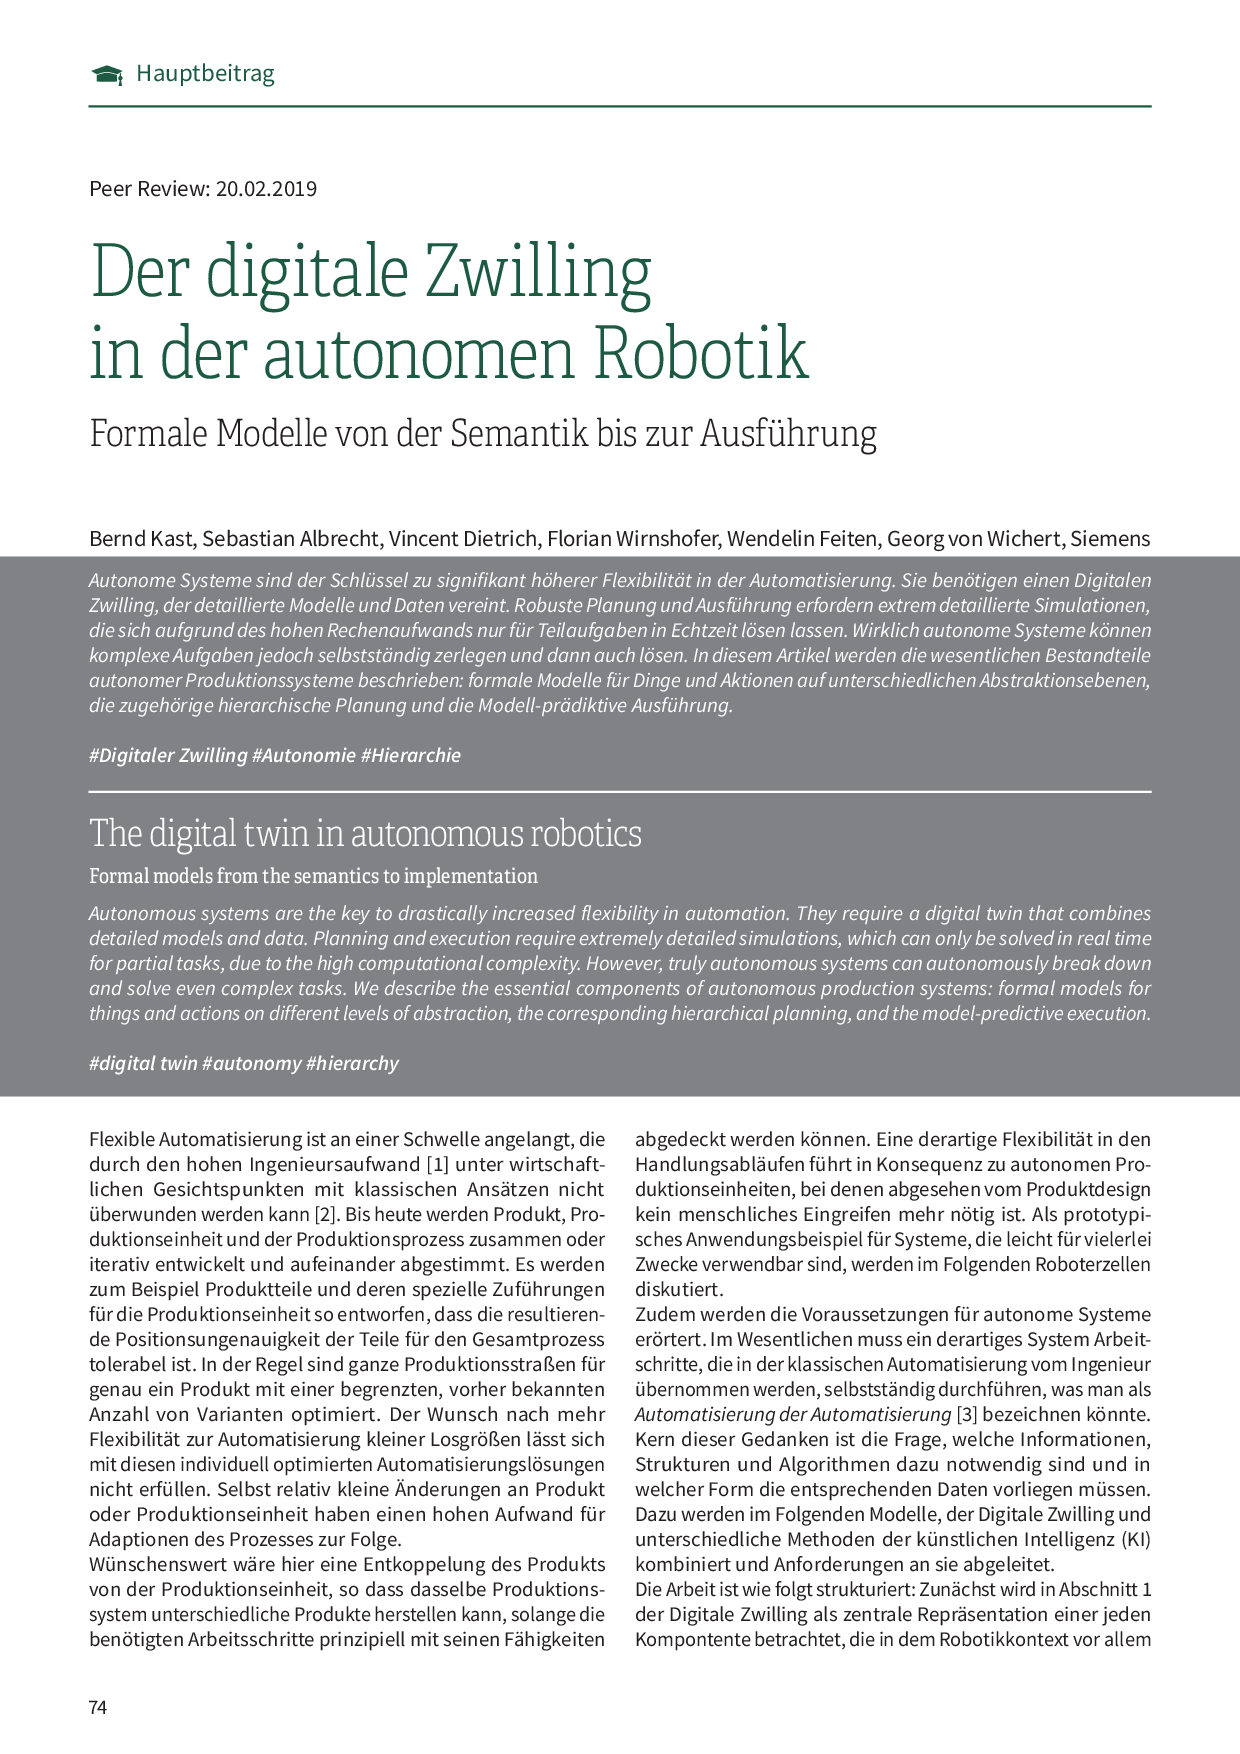 Der digitale Zwilling in der autonomen Robotik